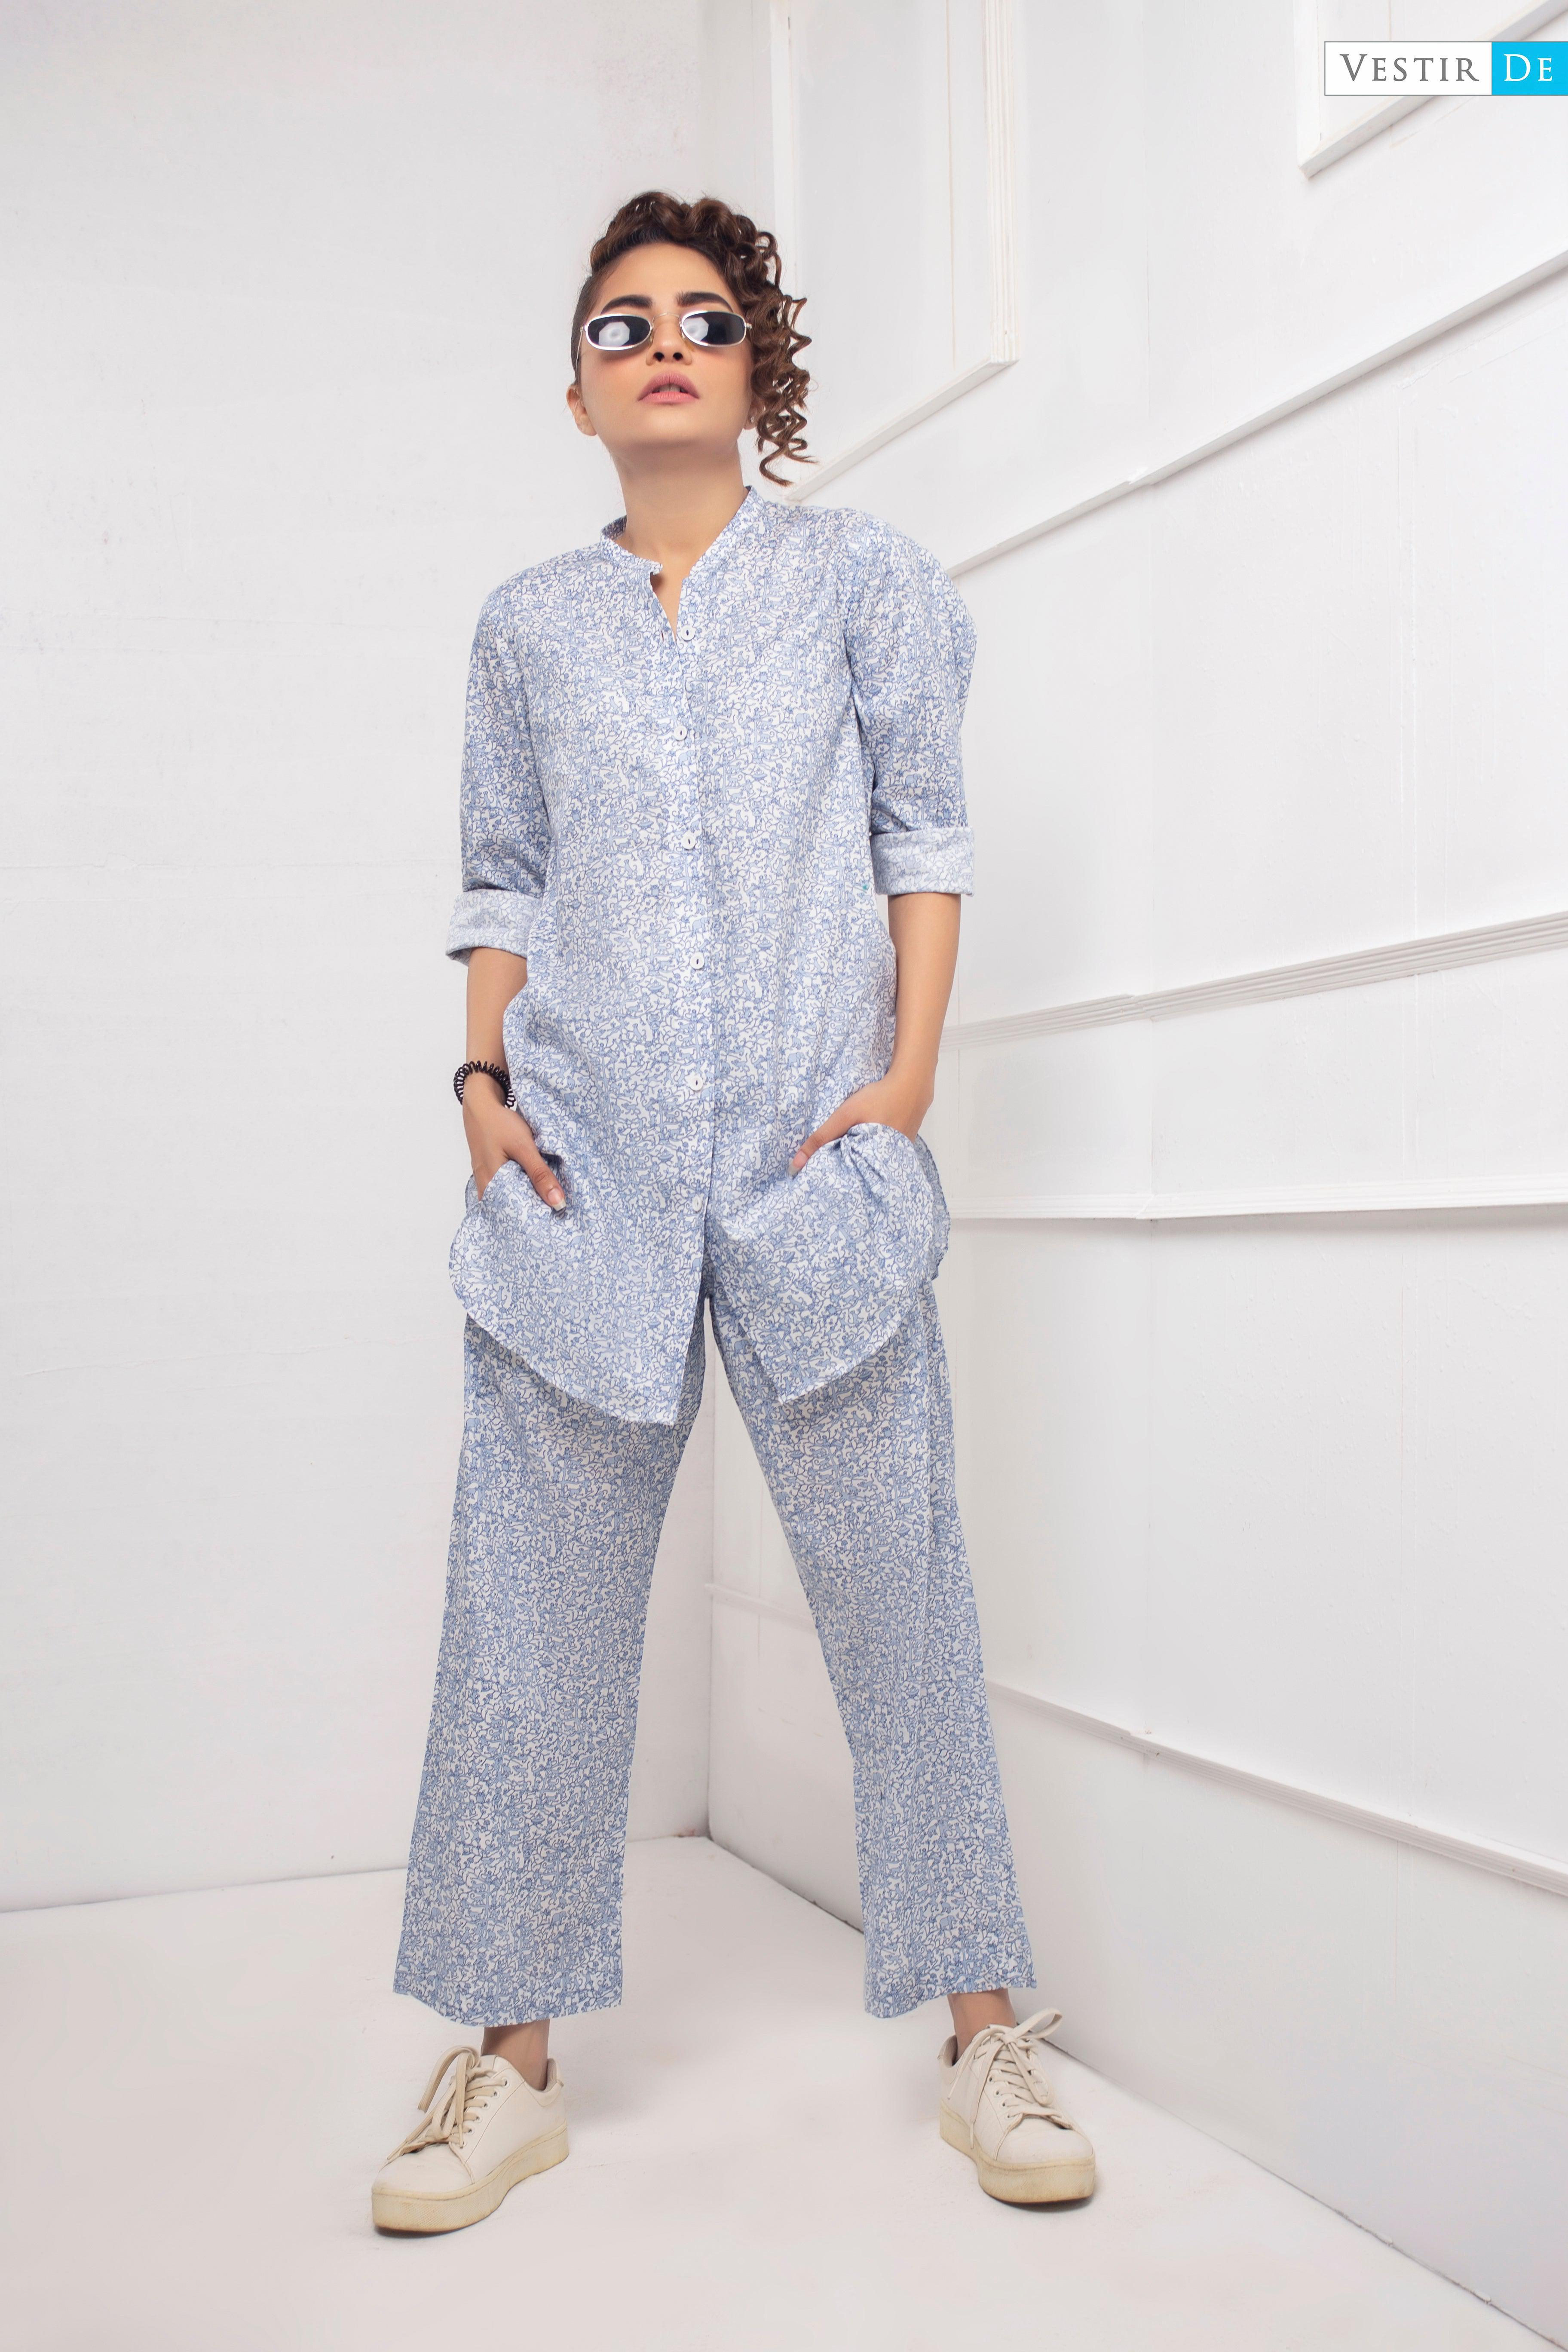 White & Blue Printed Shirt With Trouser